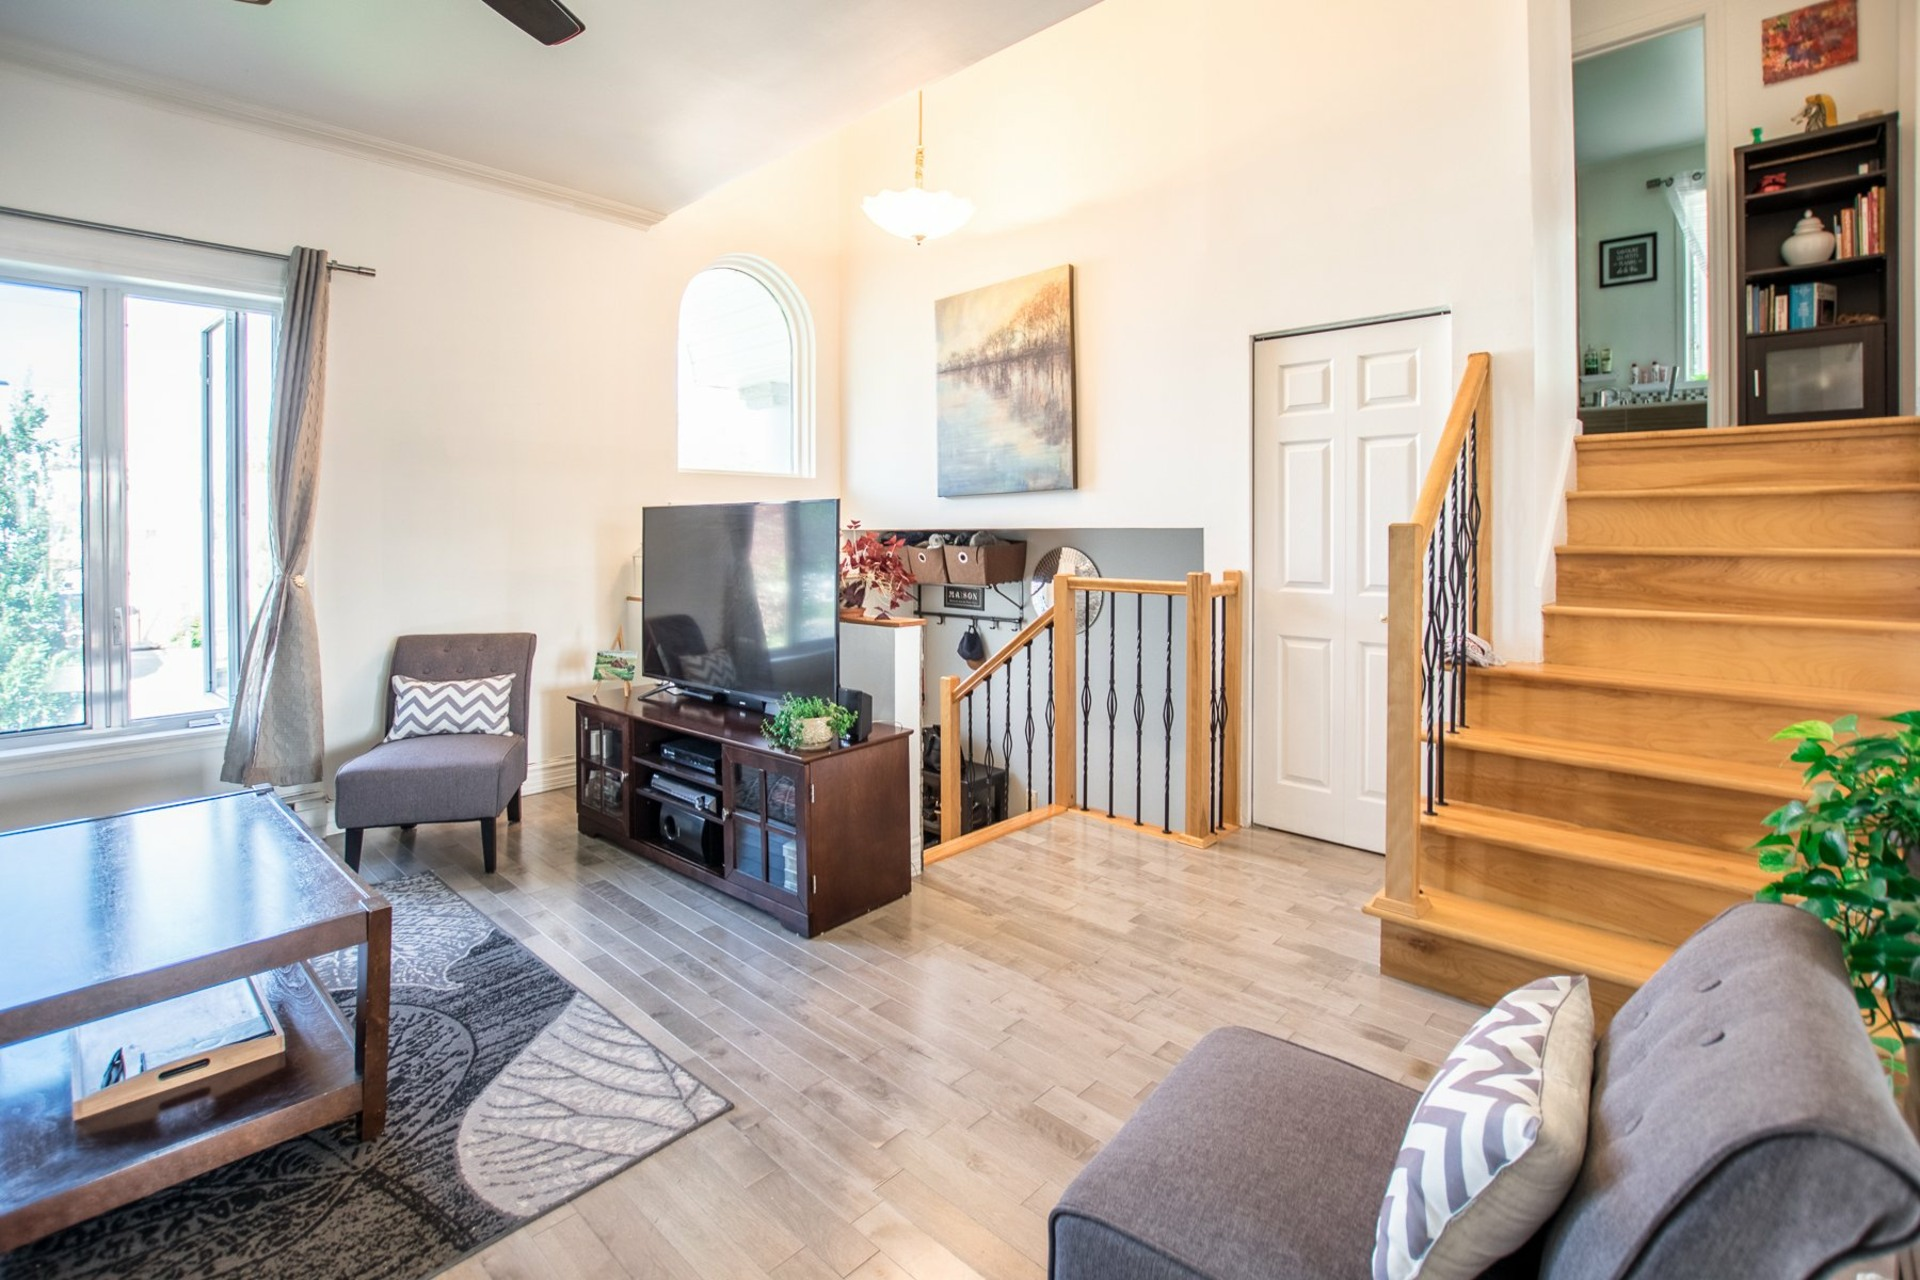 image 4 - House For sale Sainte-Catherine - 8 rooms